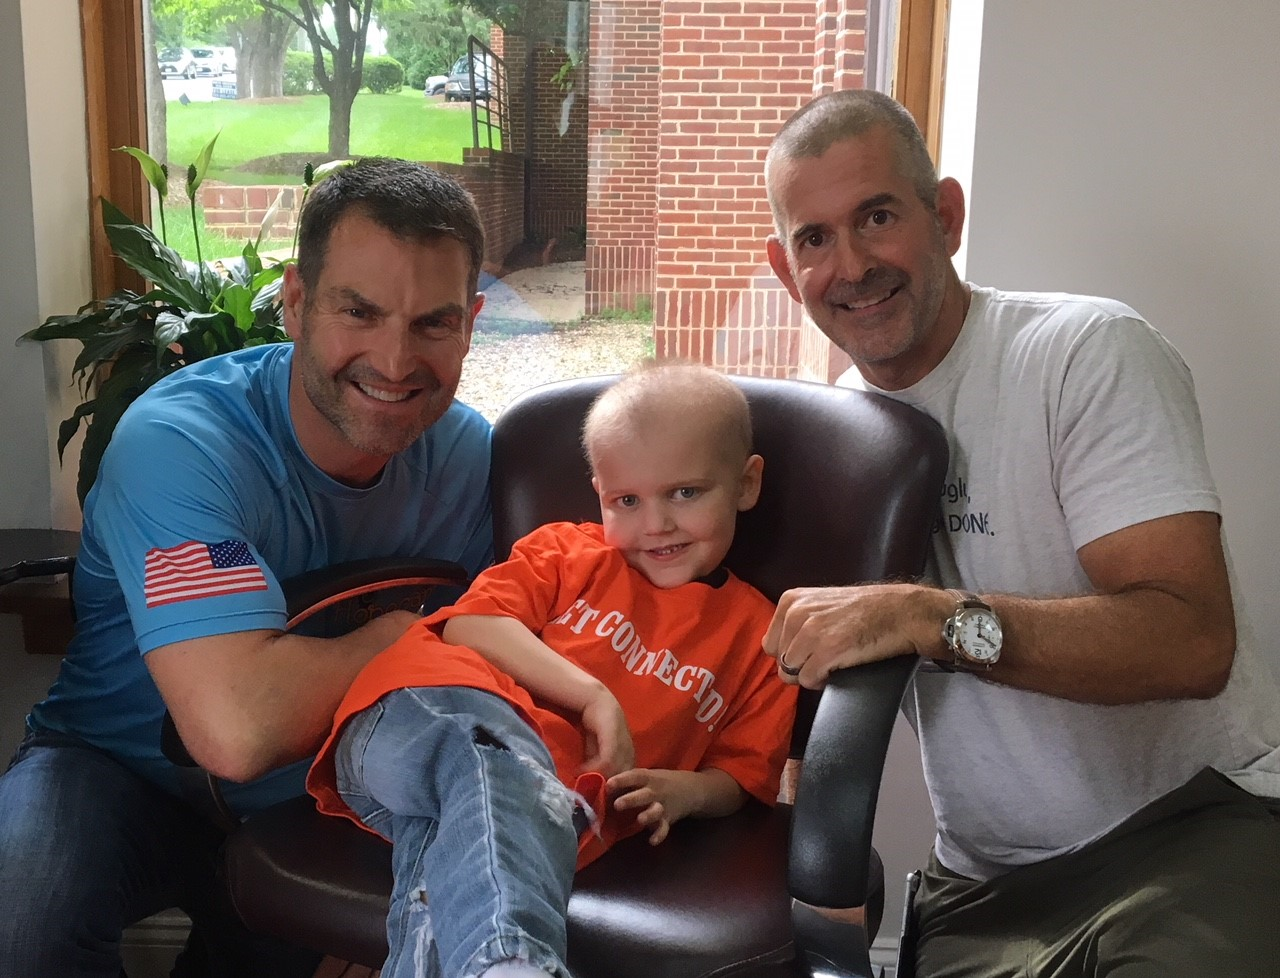 From Left: Hopecam Founder and 2X RAAM Competitor Len Forkas, 5 year old Hopecam kid Drew and Frank Fumich.